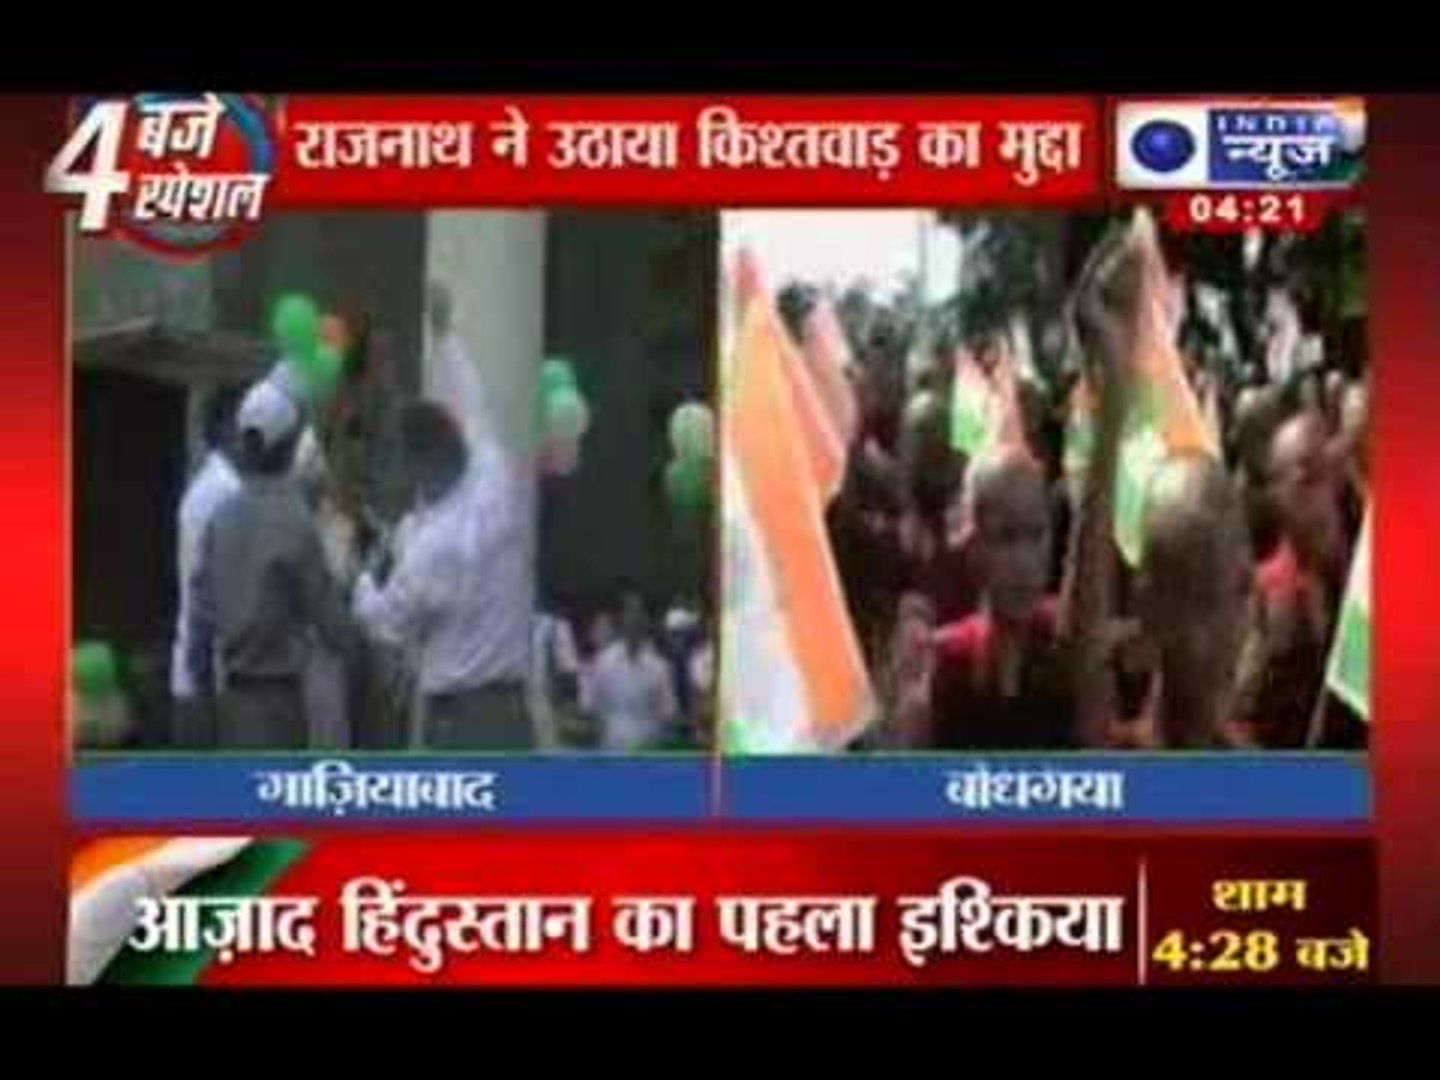 India News: Independence Day Celebrated Across States in India